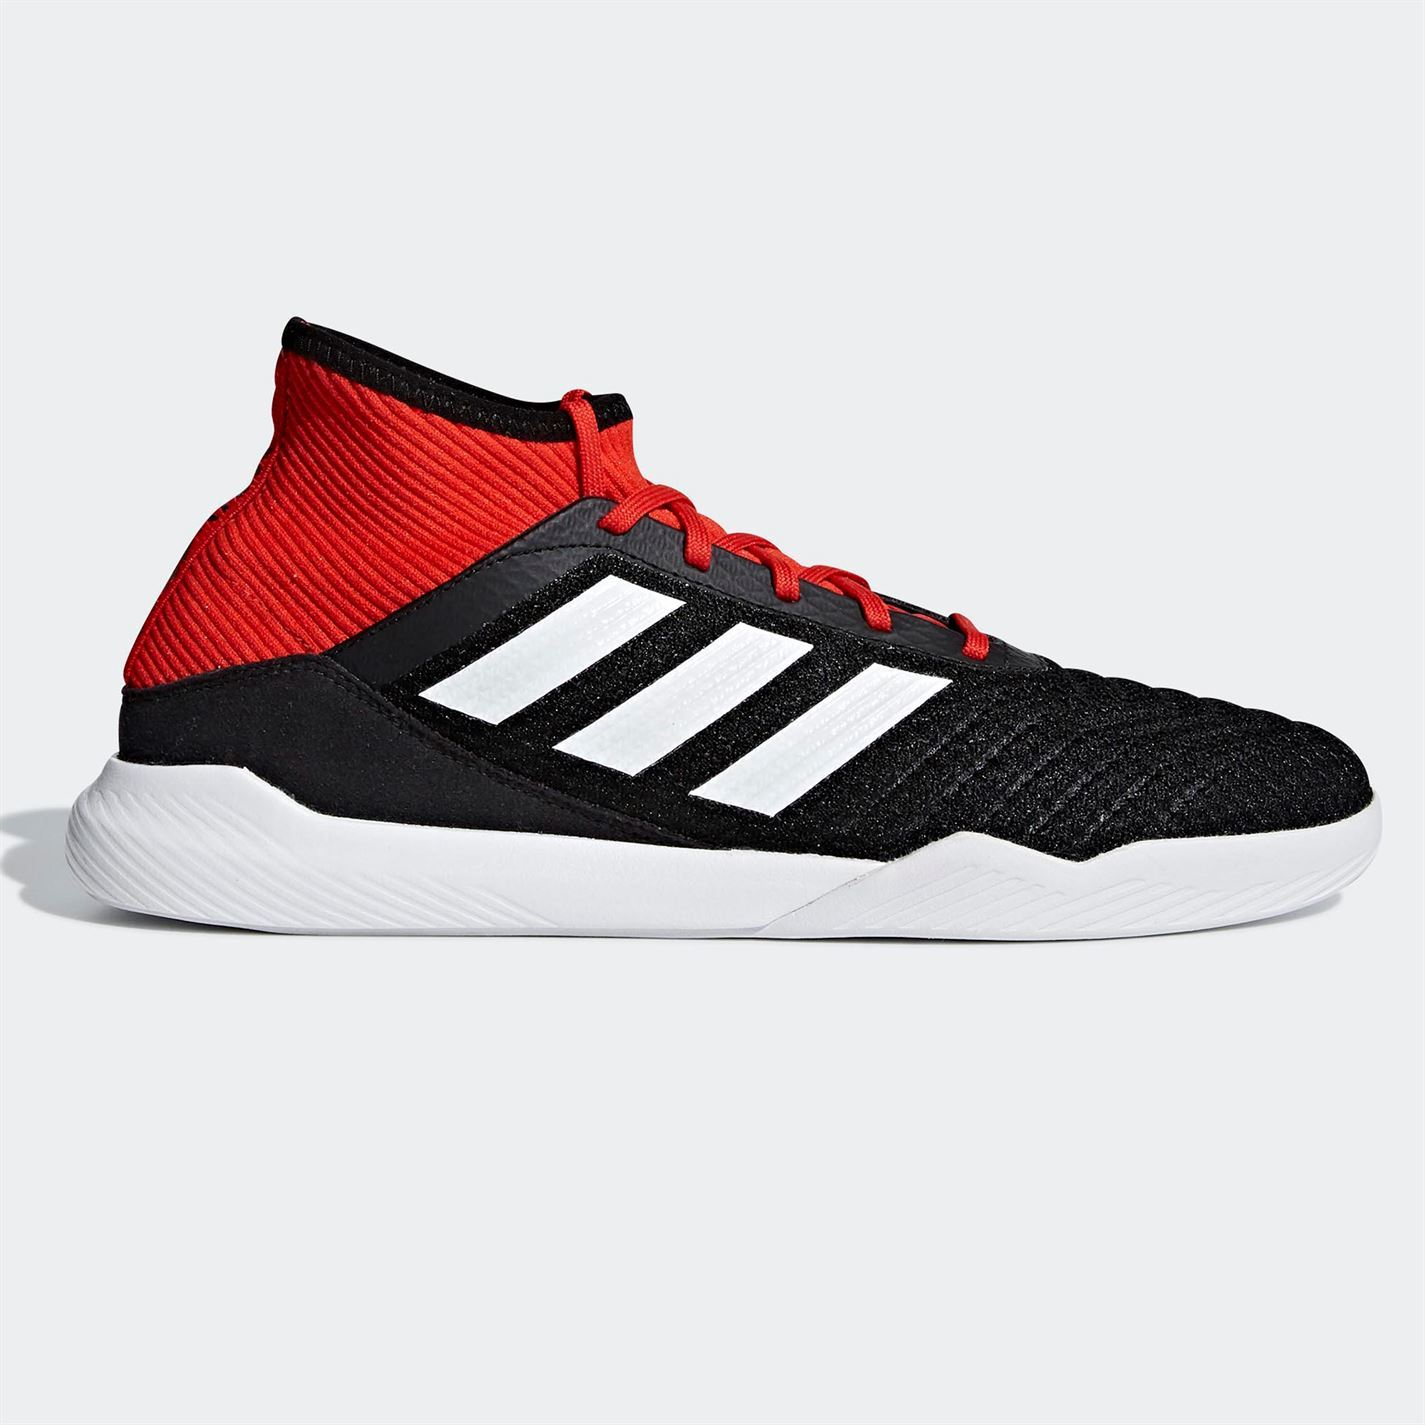 sports shoes 5631d 87917 ... adidas Predator Tango 18.3 Indoor Football Trainers Mens Futsal Soccer  Shoes